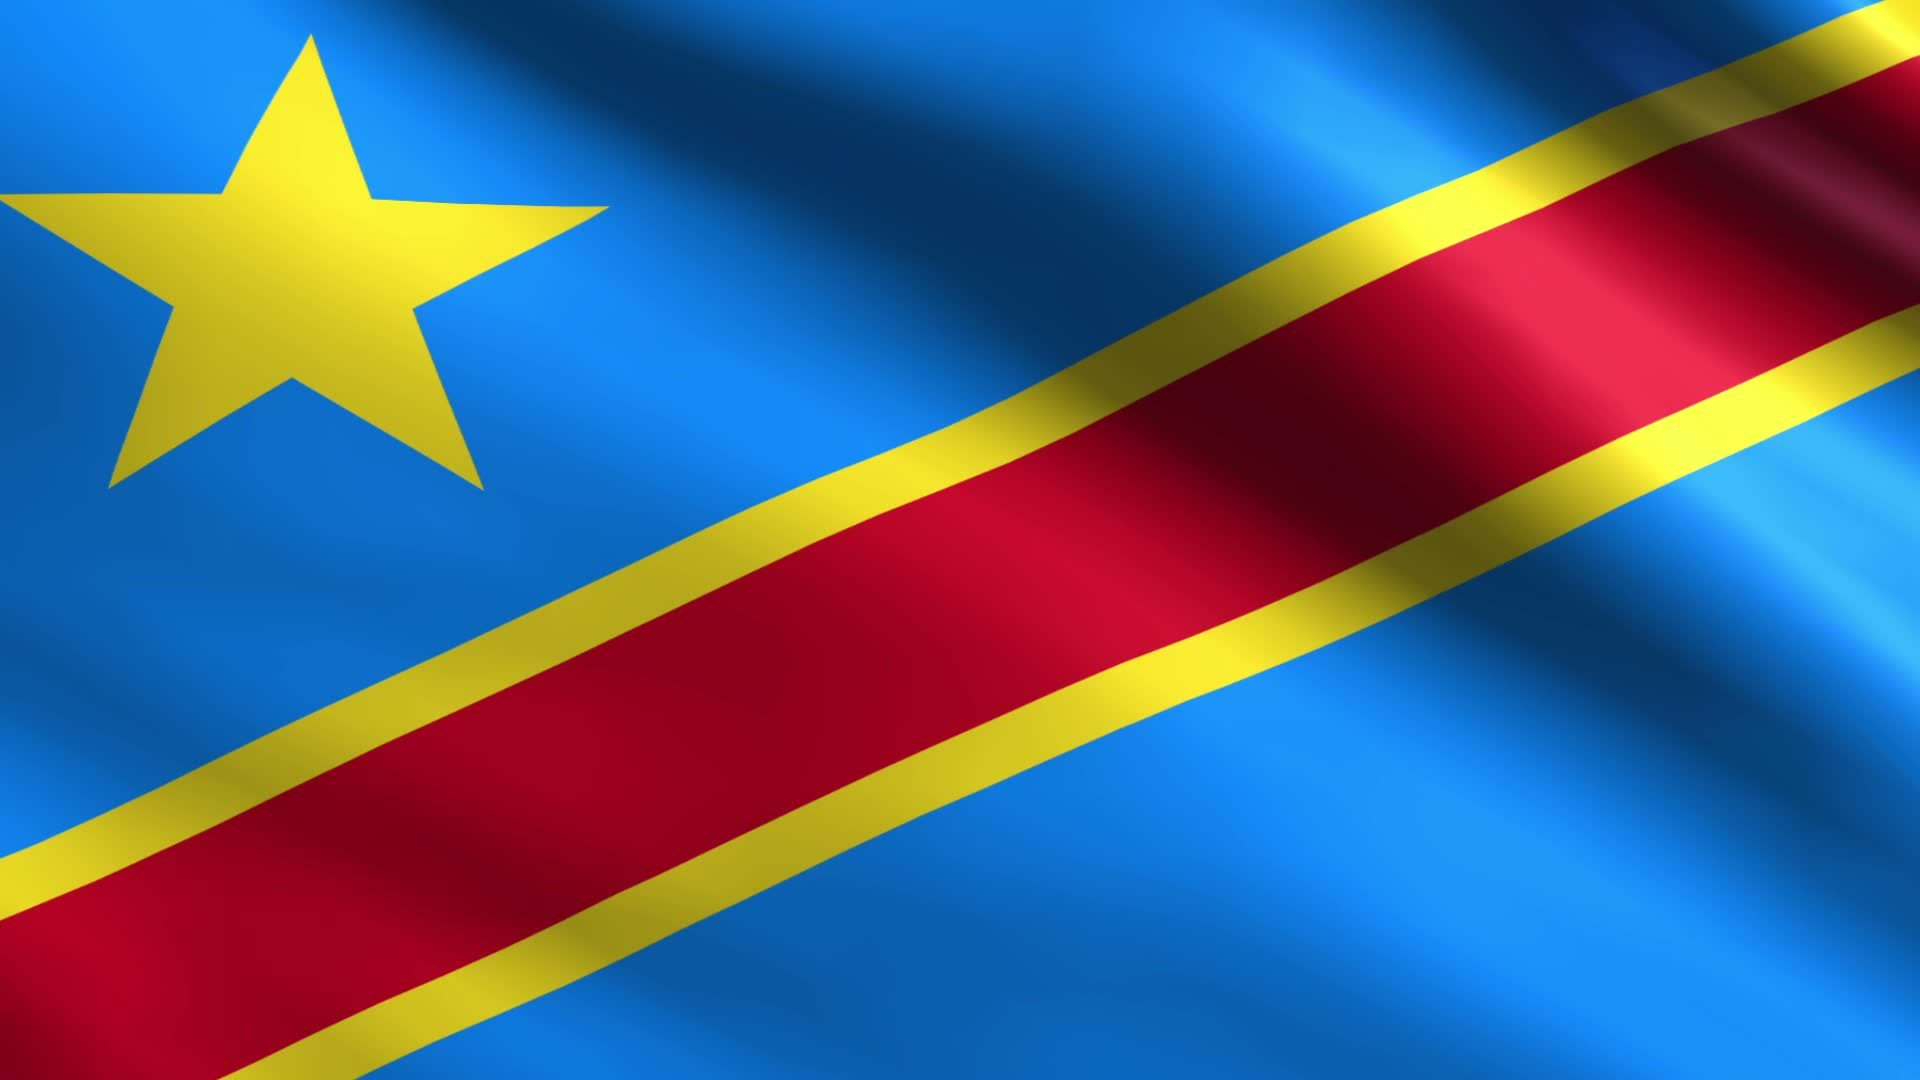 Democratic Republic of the Congo Flag   Wallpaper High Definition 1920x1080